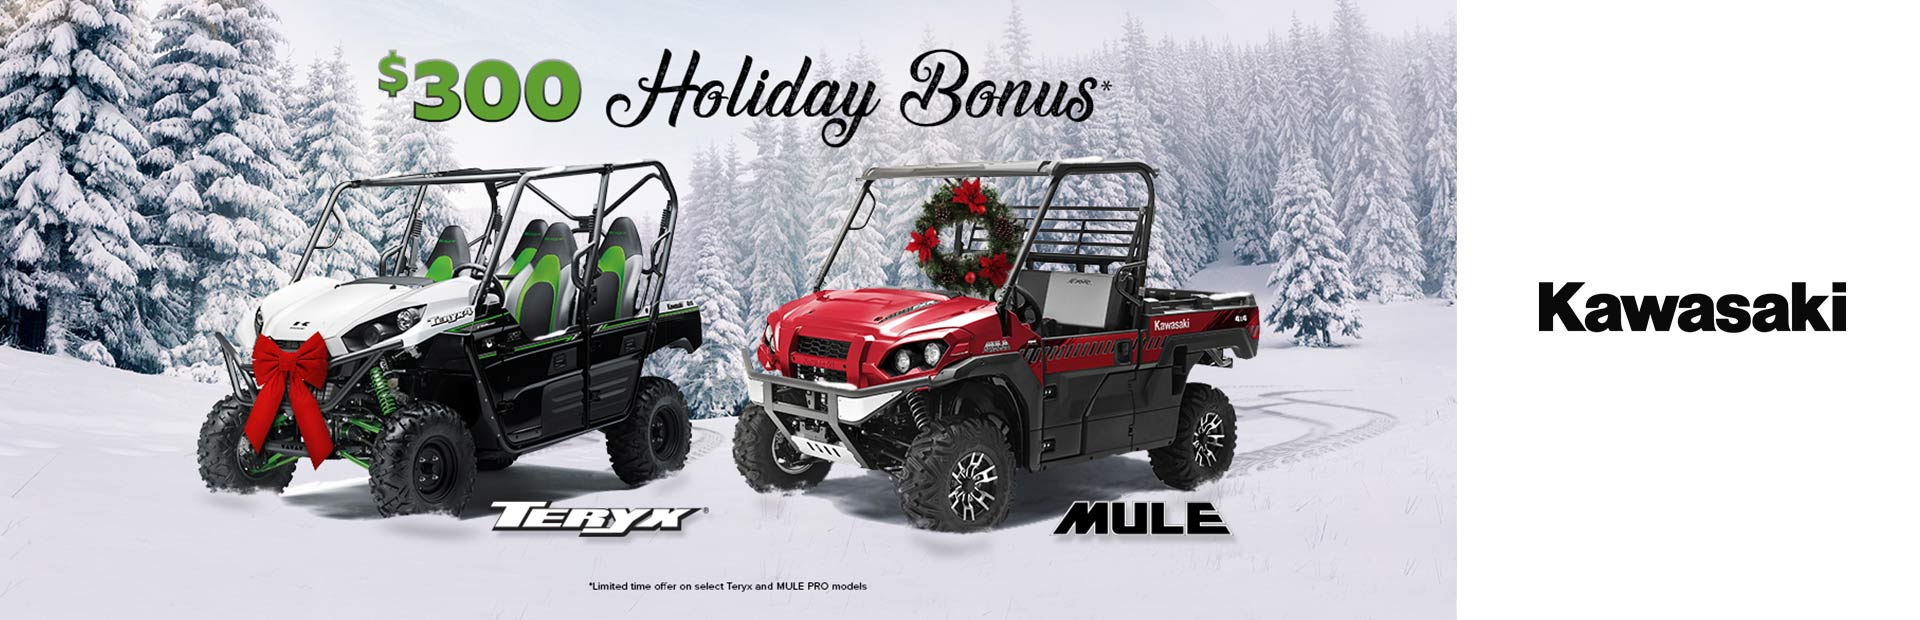 Kawasaki: $300 Holiday Bonus